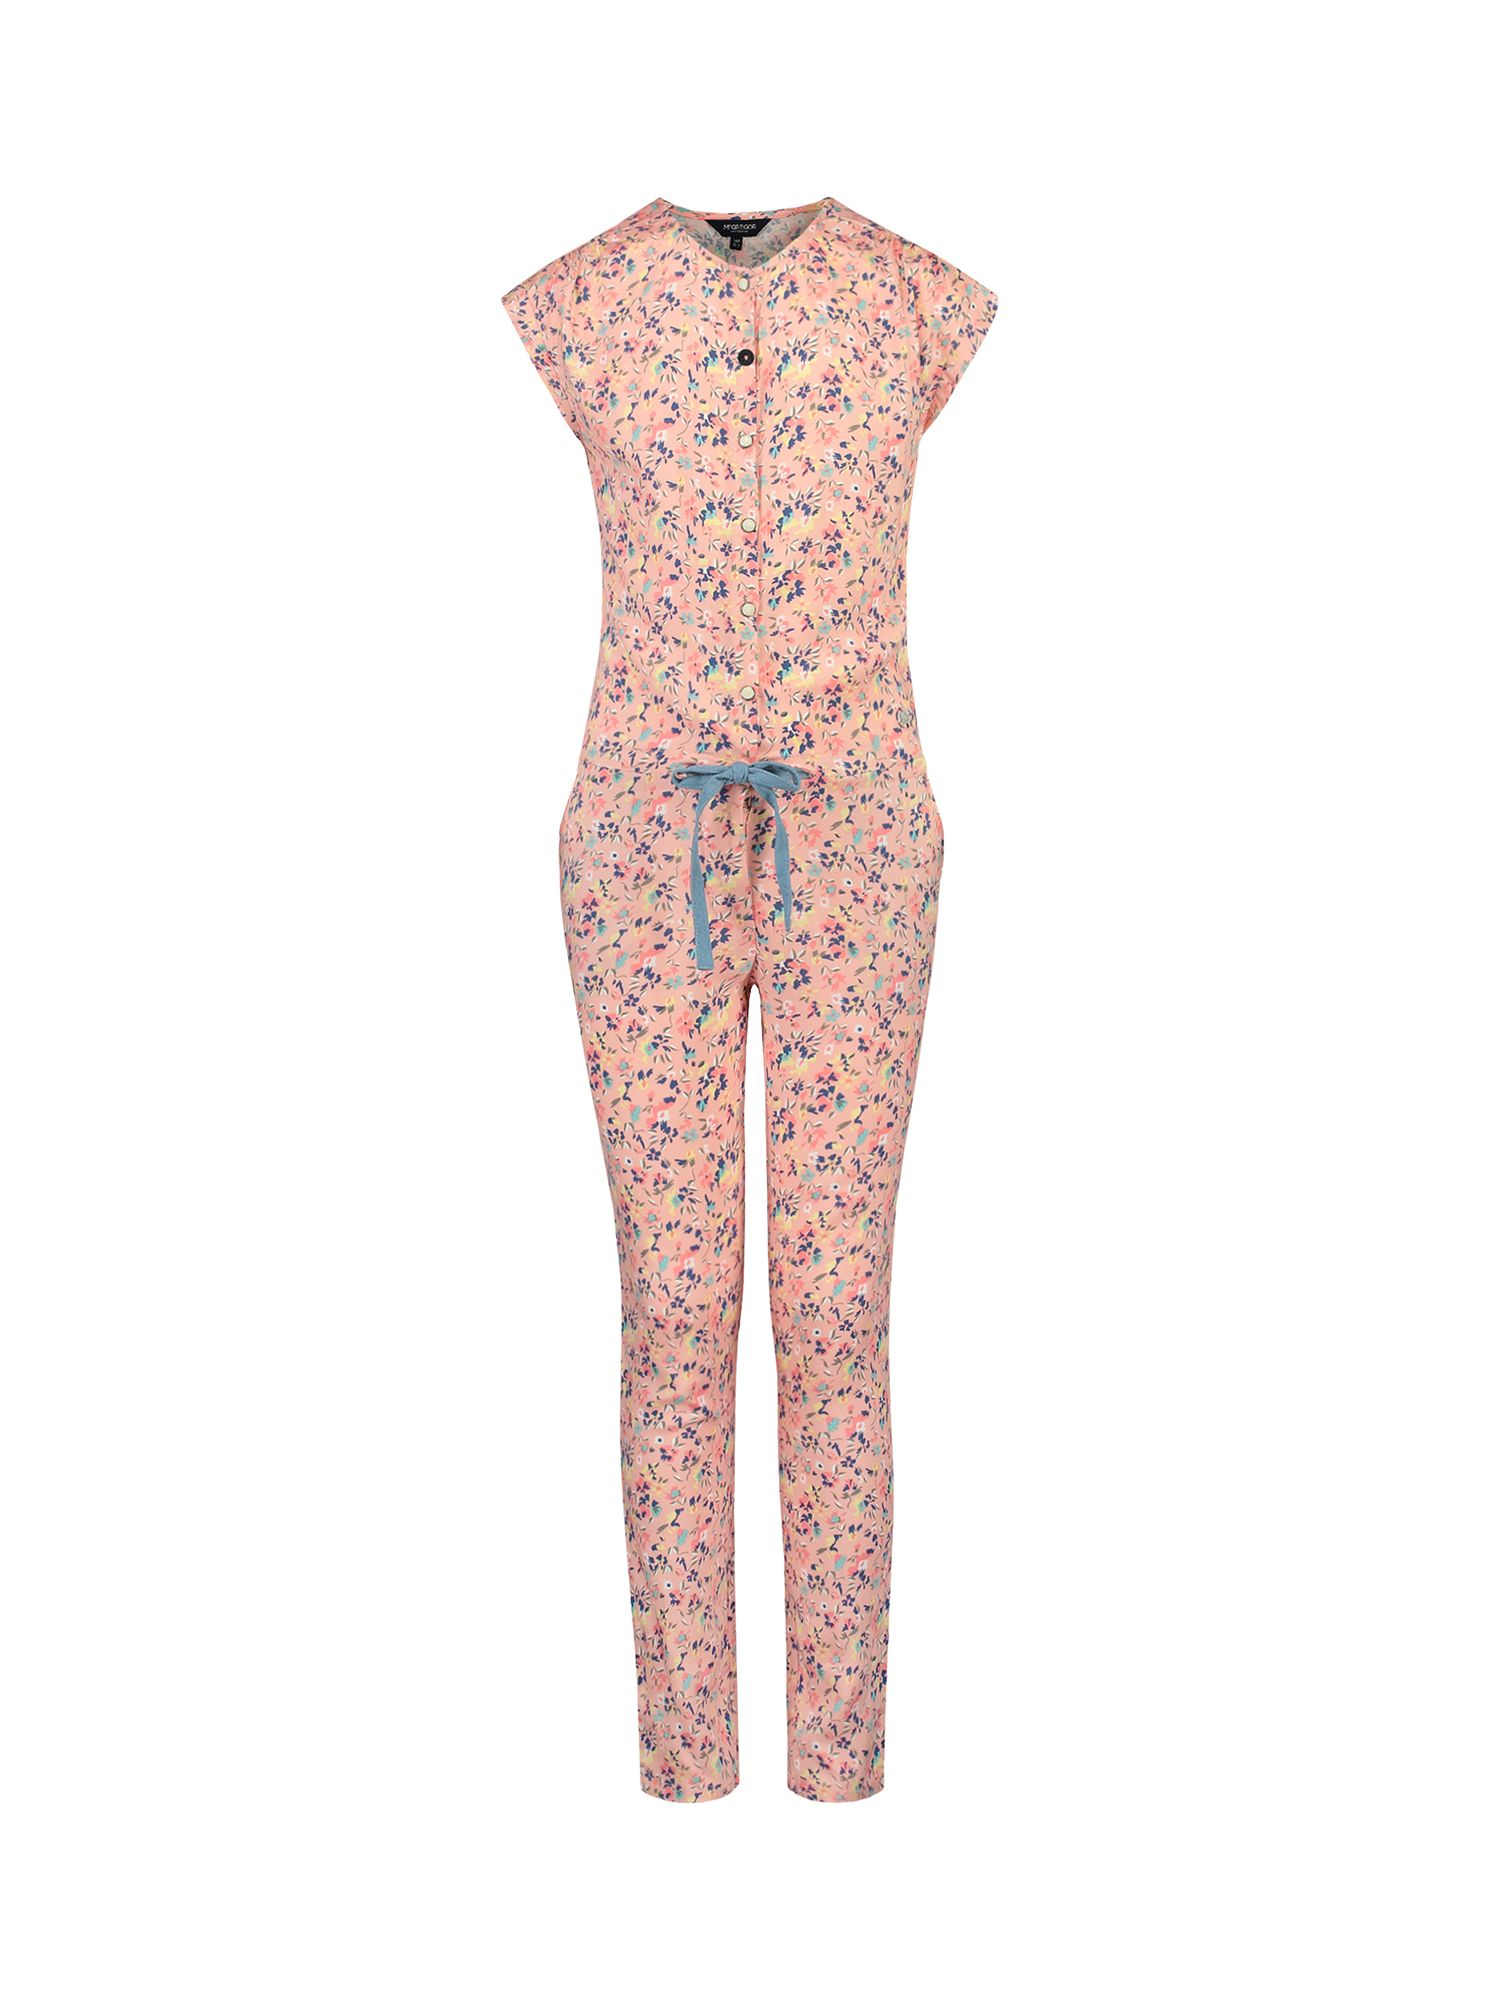 McGregor McGregor Girls Jumpsuit Pia Flower, Pink